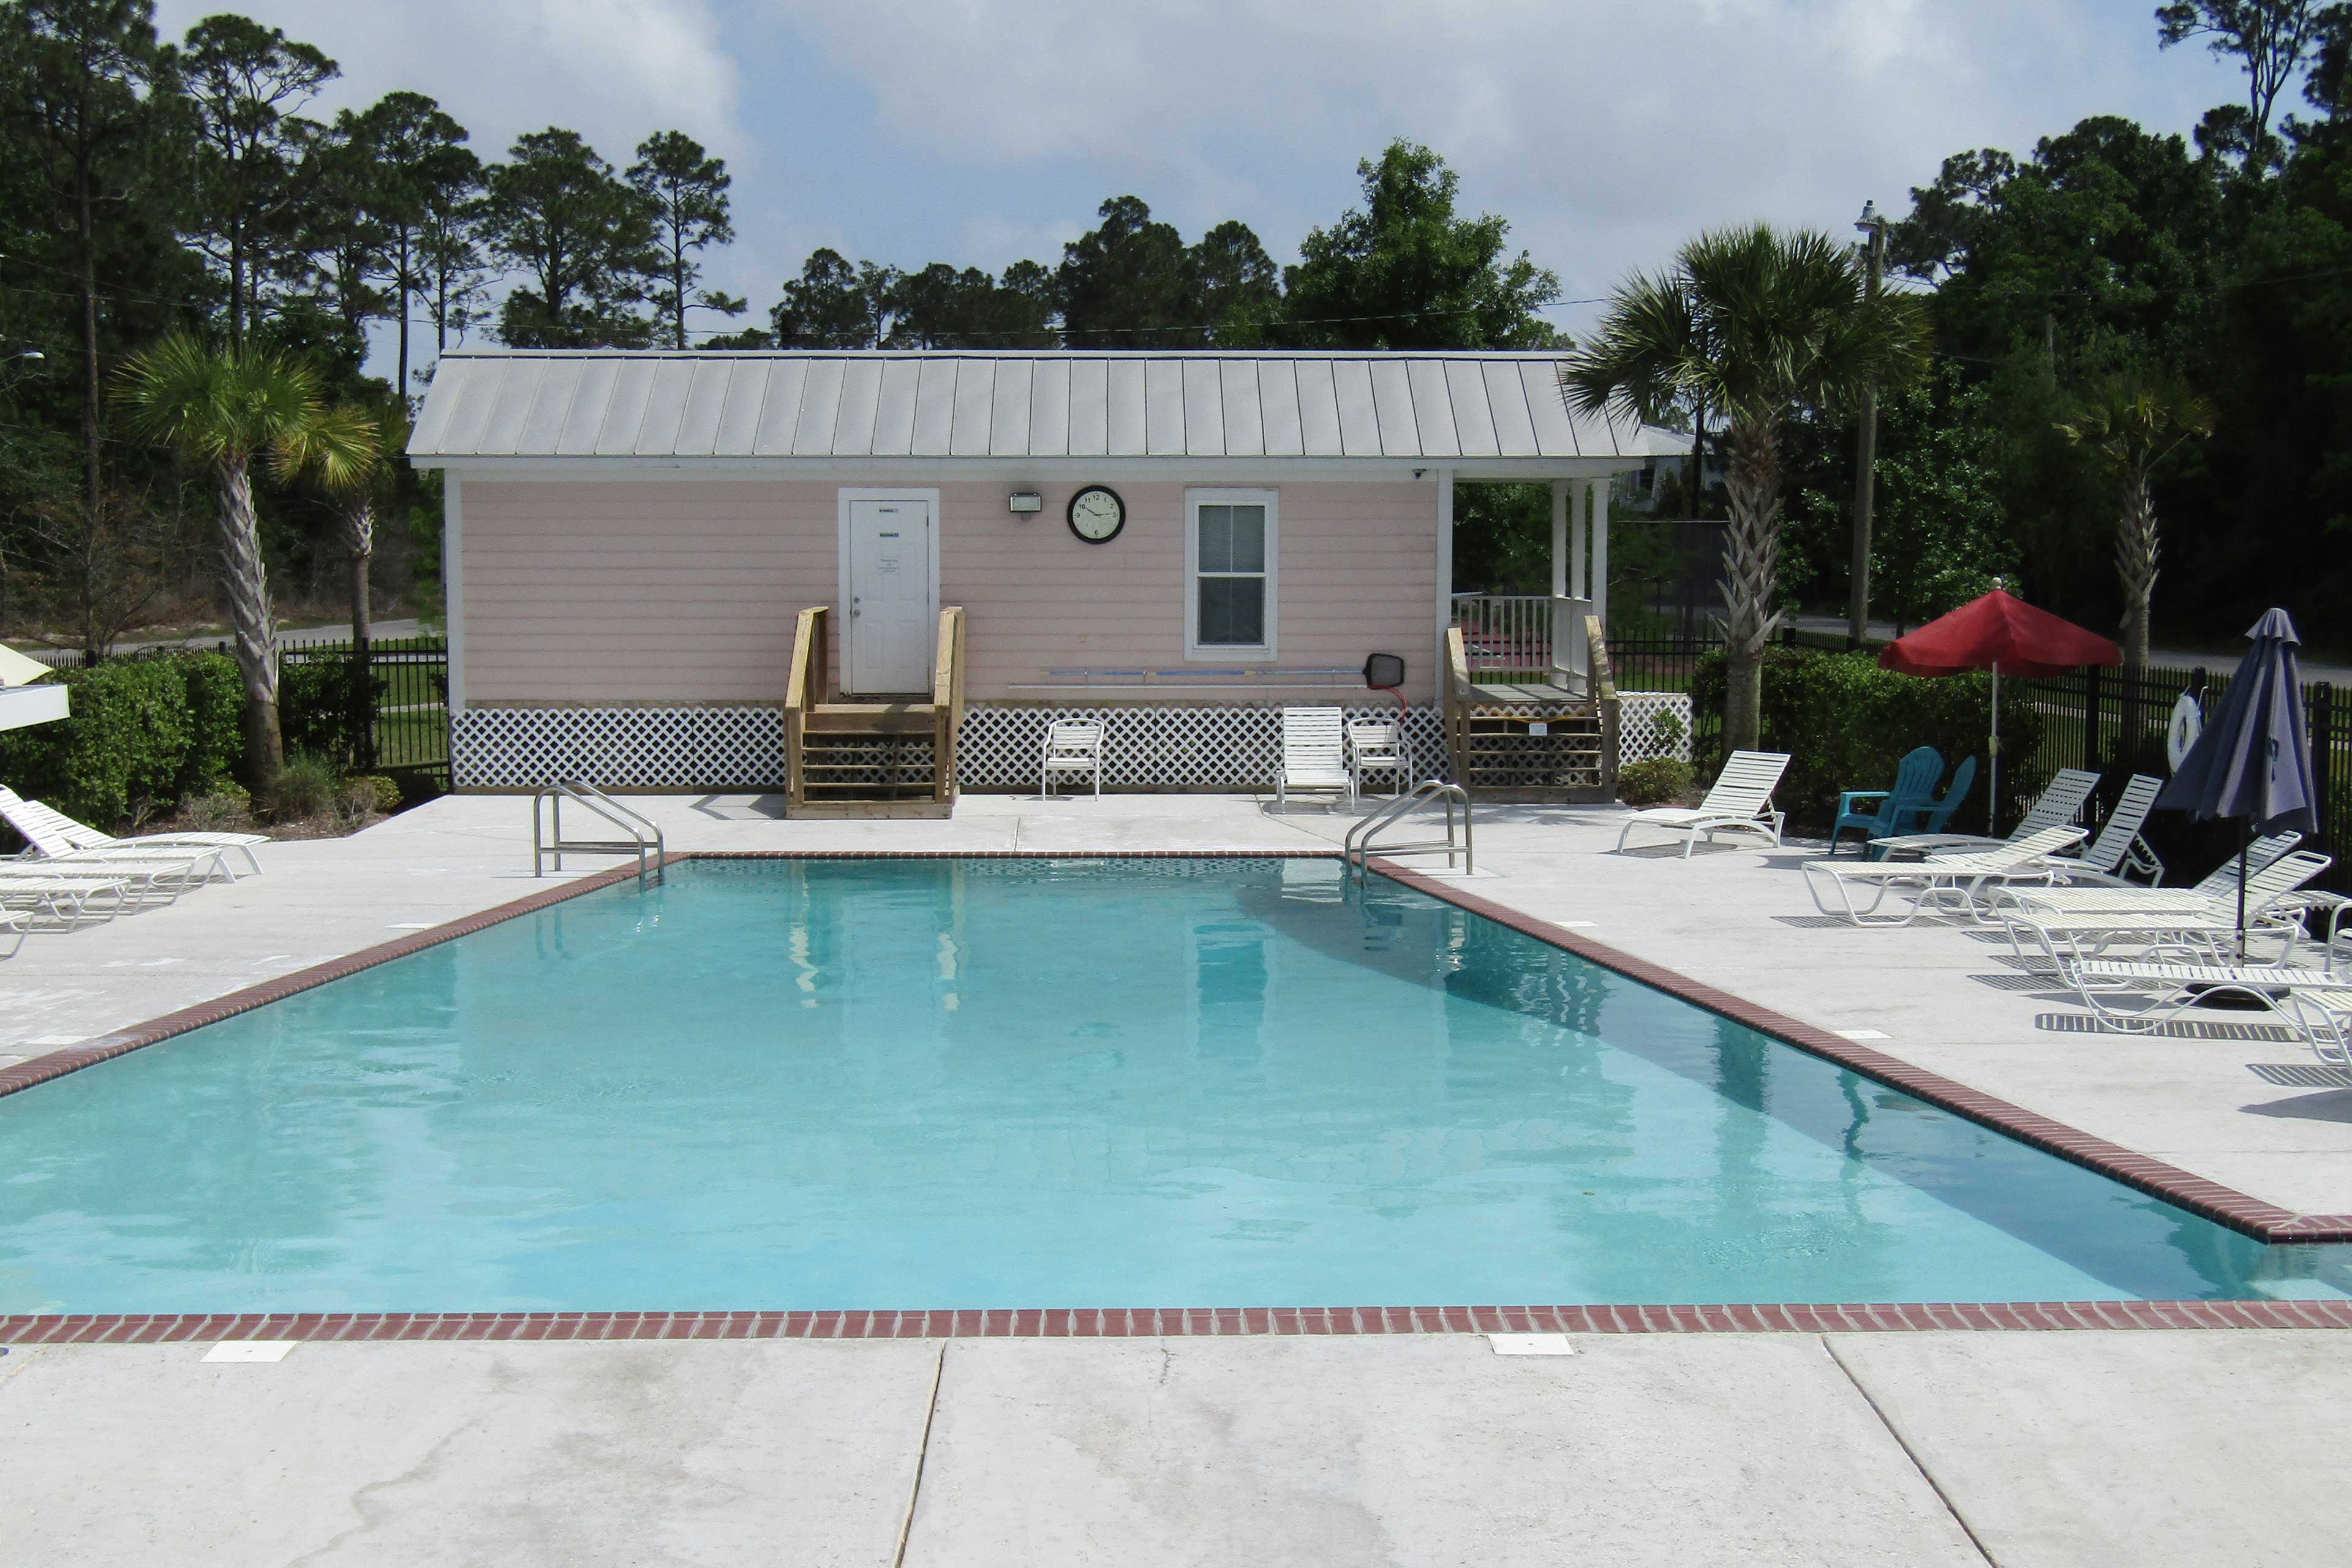 Go for a dip in the community pool to stay nice and cool.